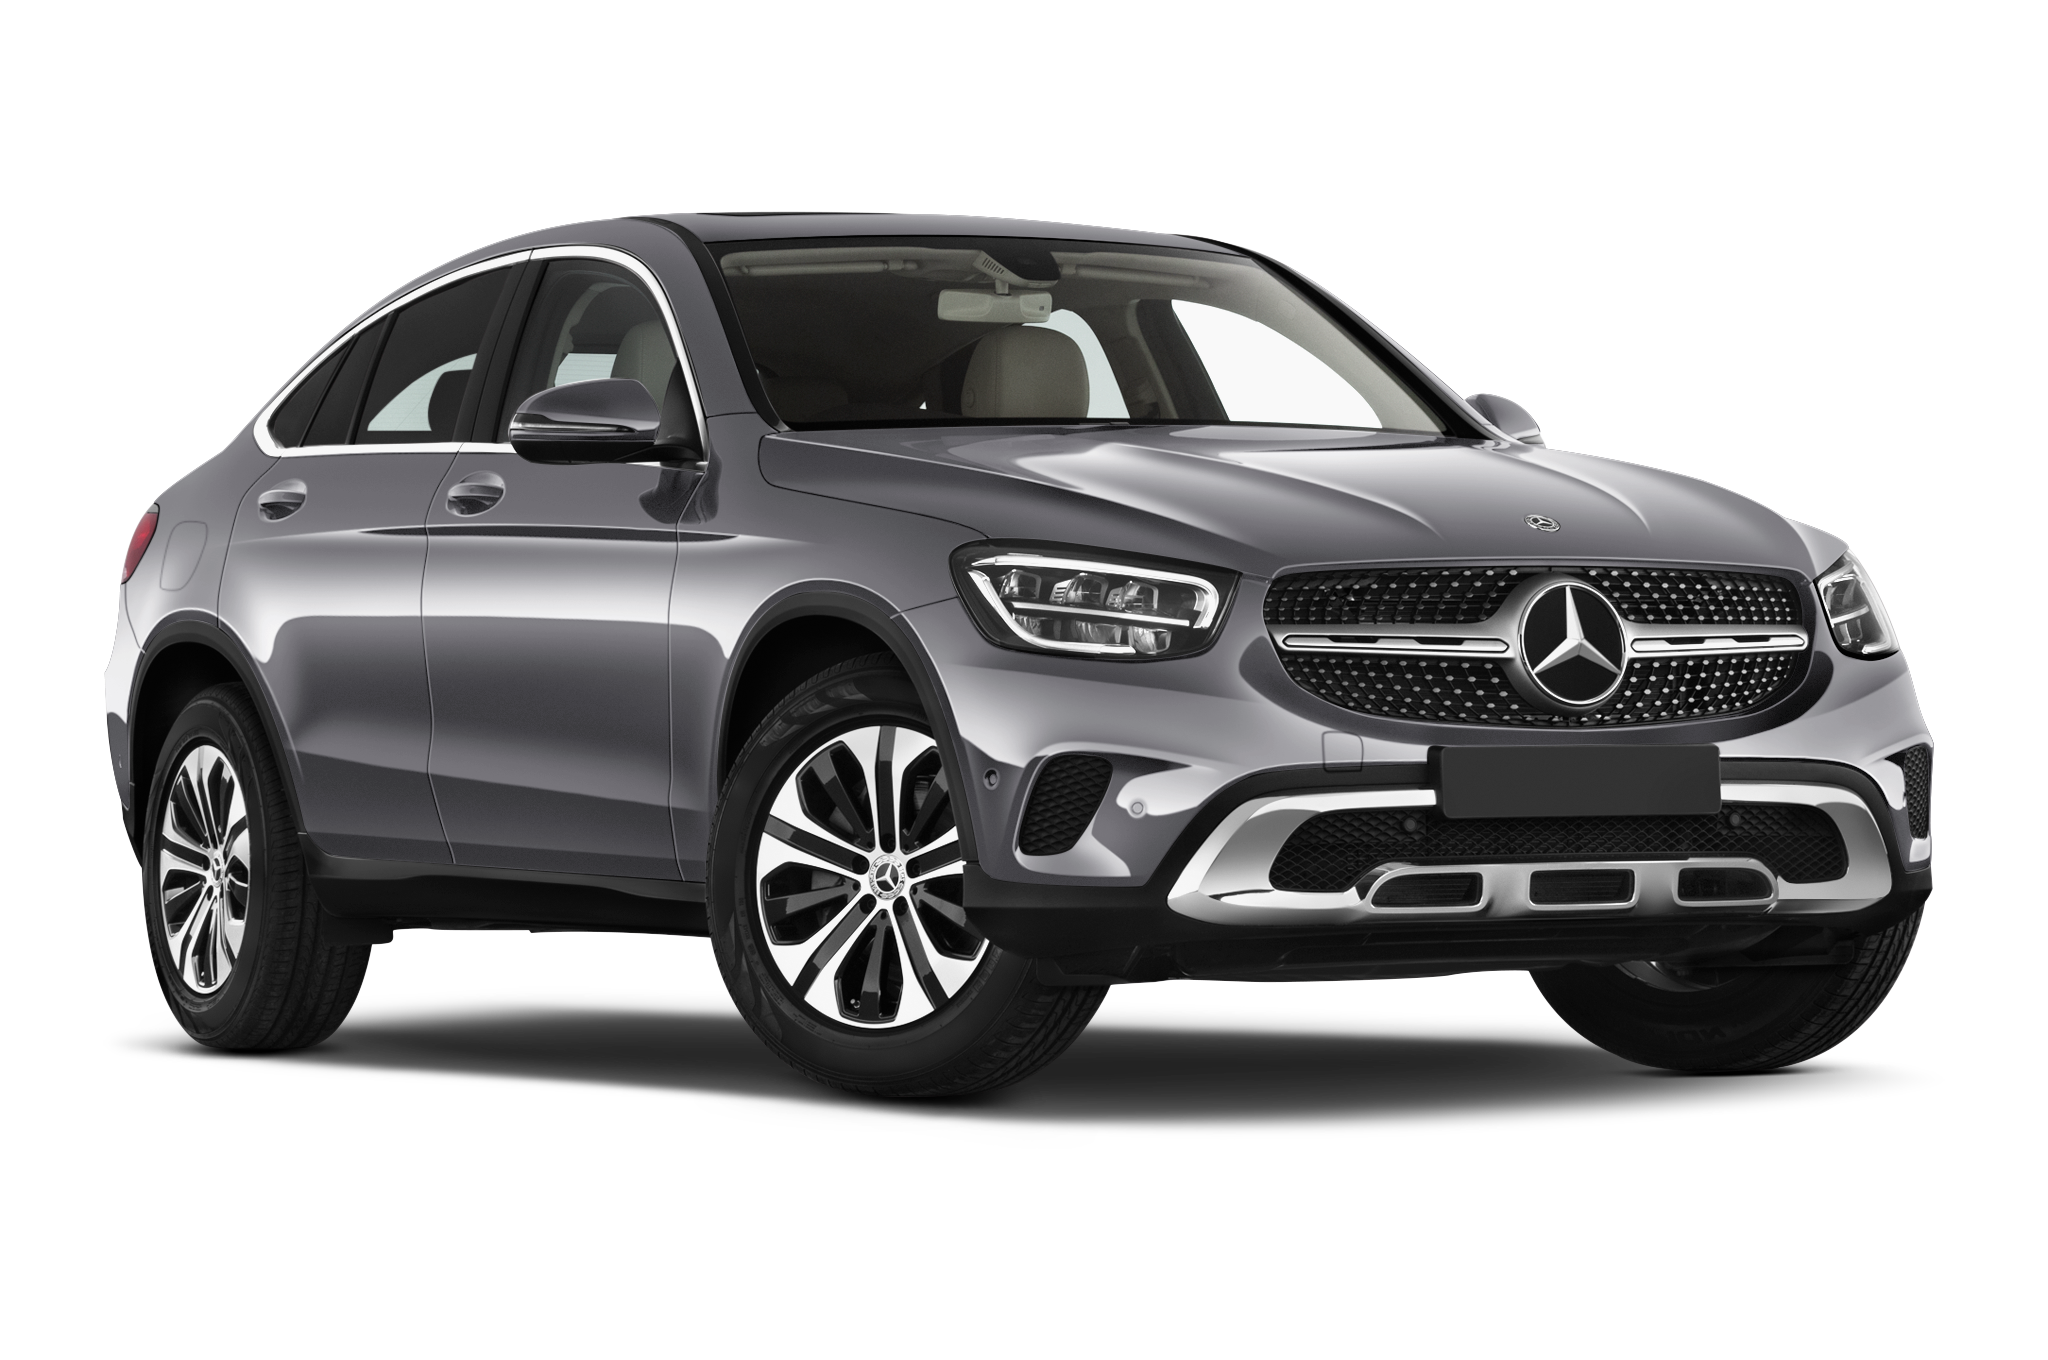 Mercedes Glc Coupe Lease Deals From 408pm Carwow